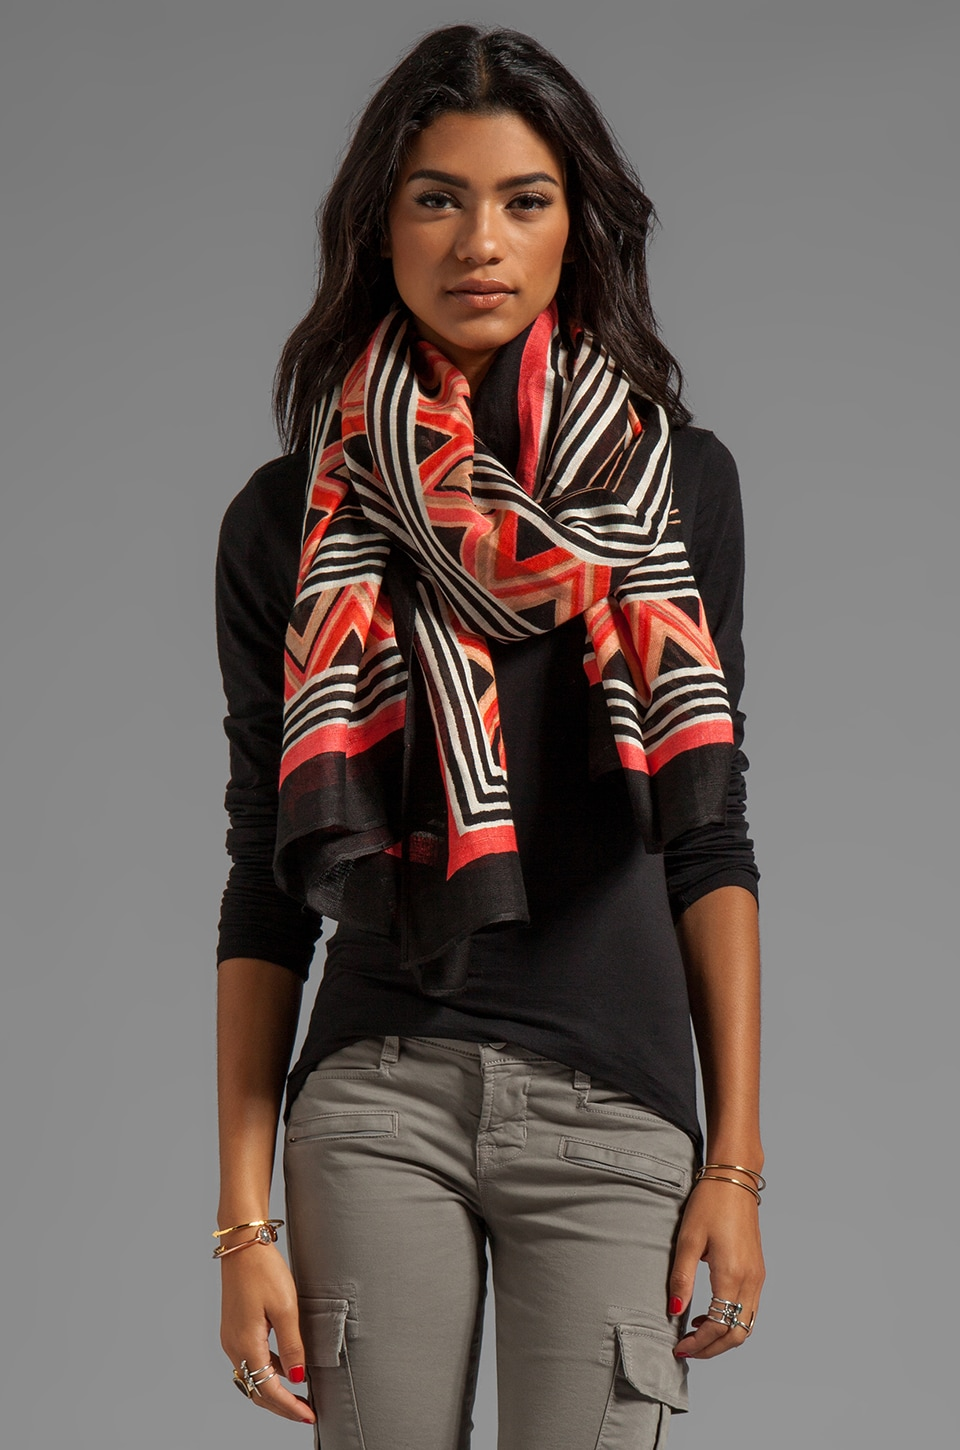 Theodora & Callum Berber Tie All Scarf in Black Multi